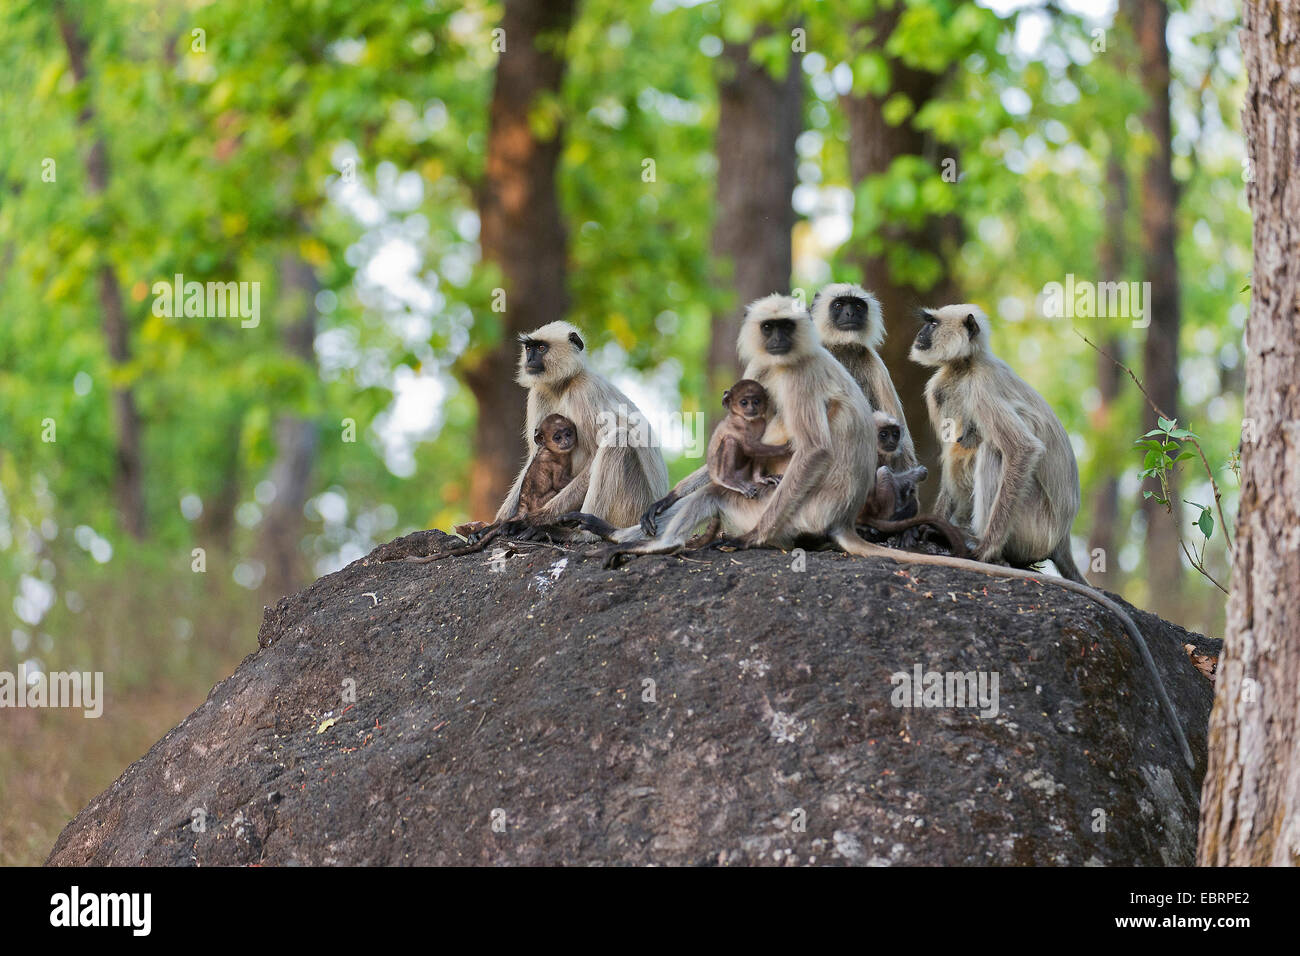 Southern plains gray langur, Gray langur monkey (Semnopithecus dussumieri), females sitting with their young animals - Stock Image